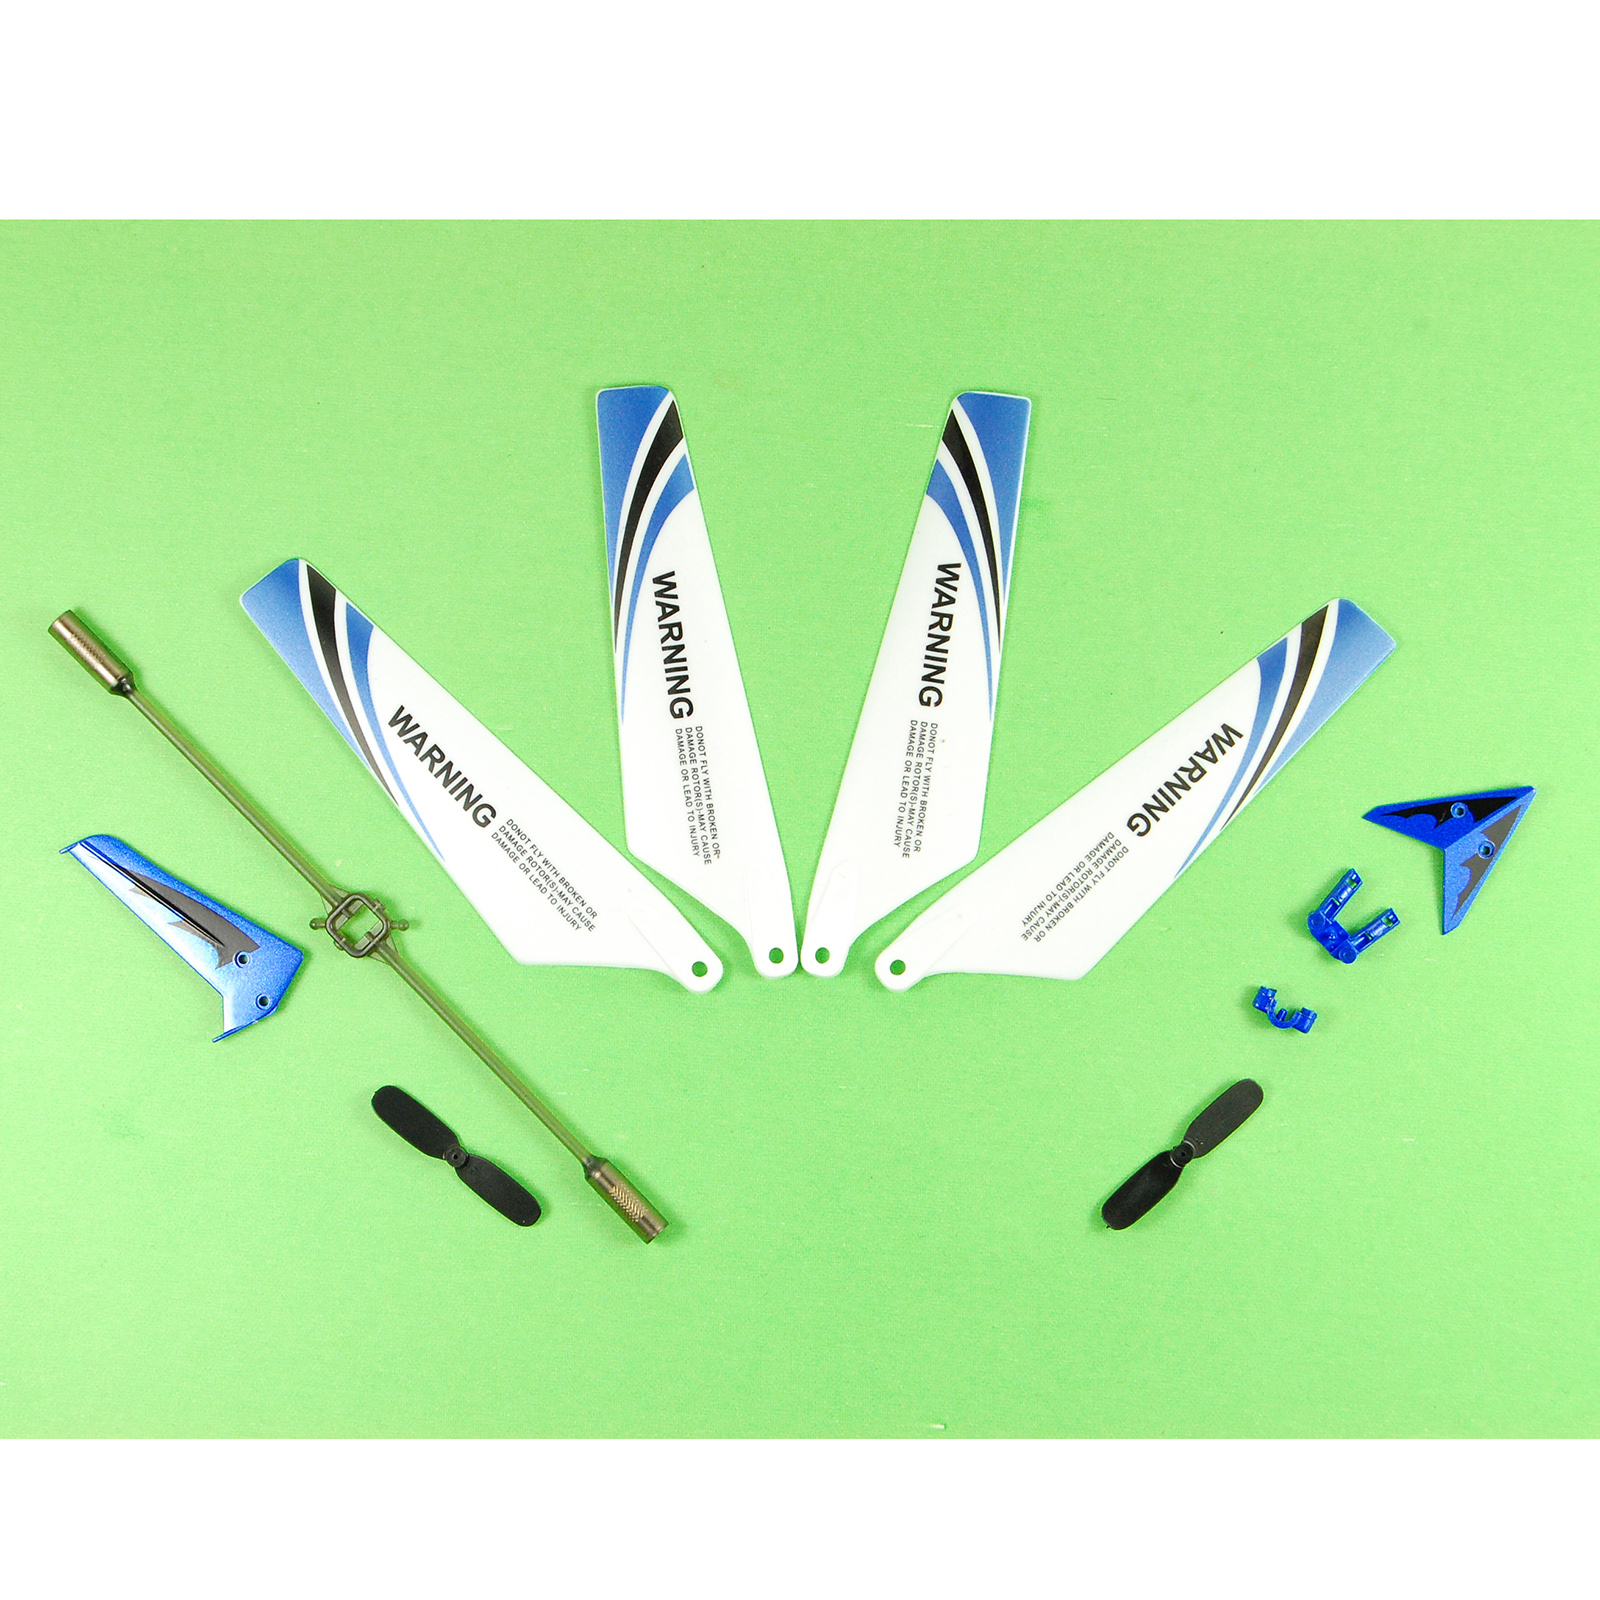 [US Direct] Syma S107 Parts, 4 Main Blades 1 Set of Tail Accessories 2 Tail Blades 1 Balance Rod